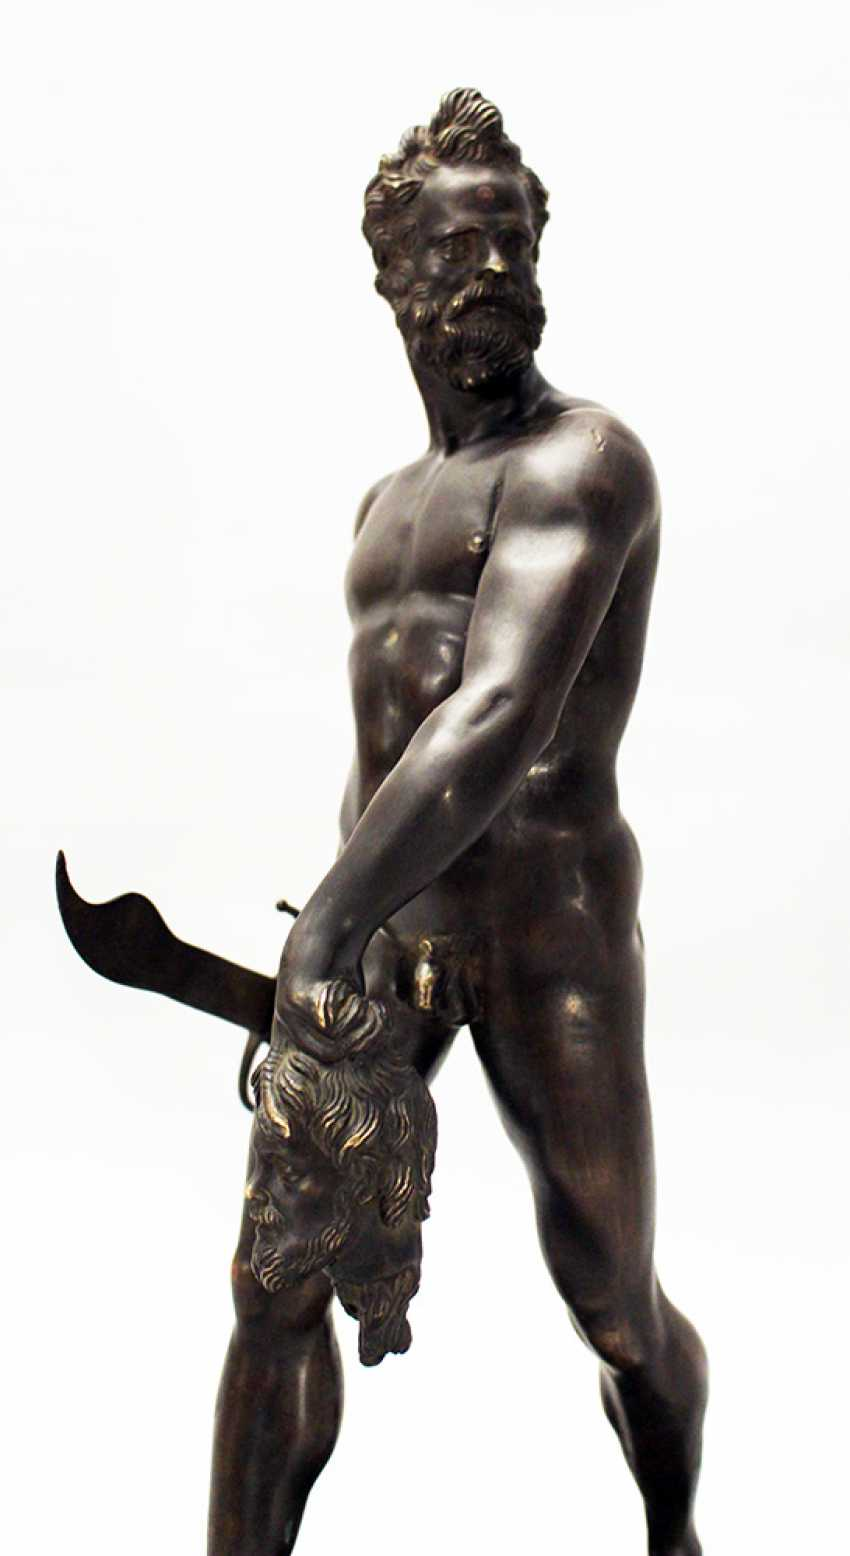 Giovanni da Bologna (1529-1608)-follower, Bronze sculpture of a walking naked warrior with male head and sword in the hands - photo 3